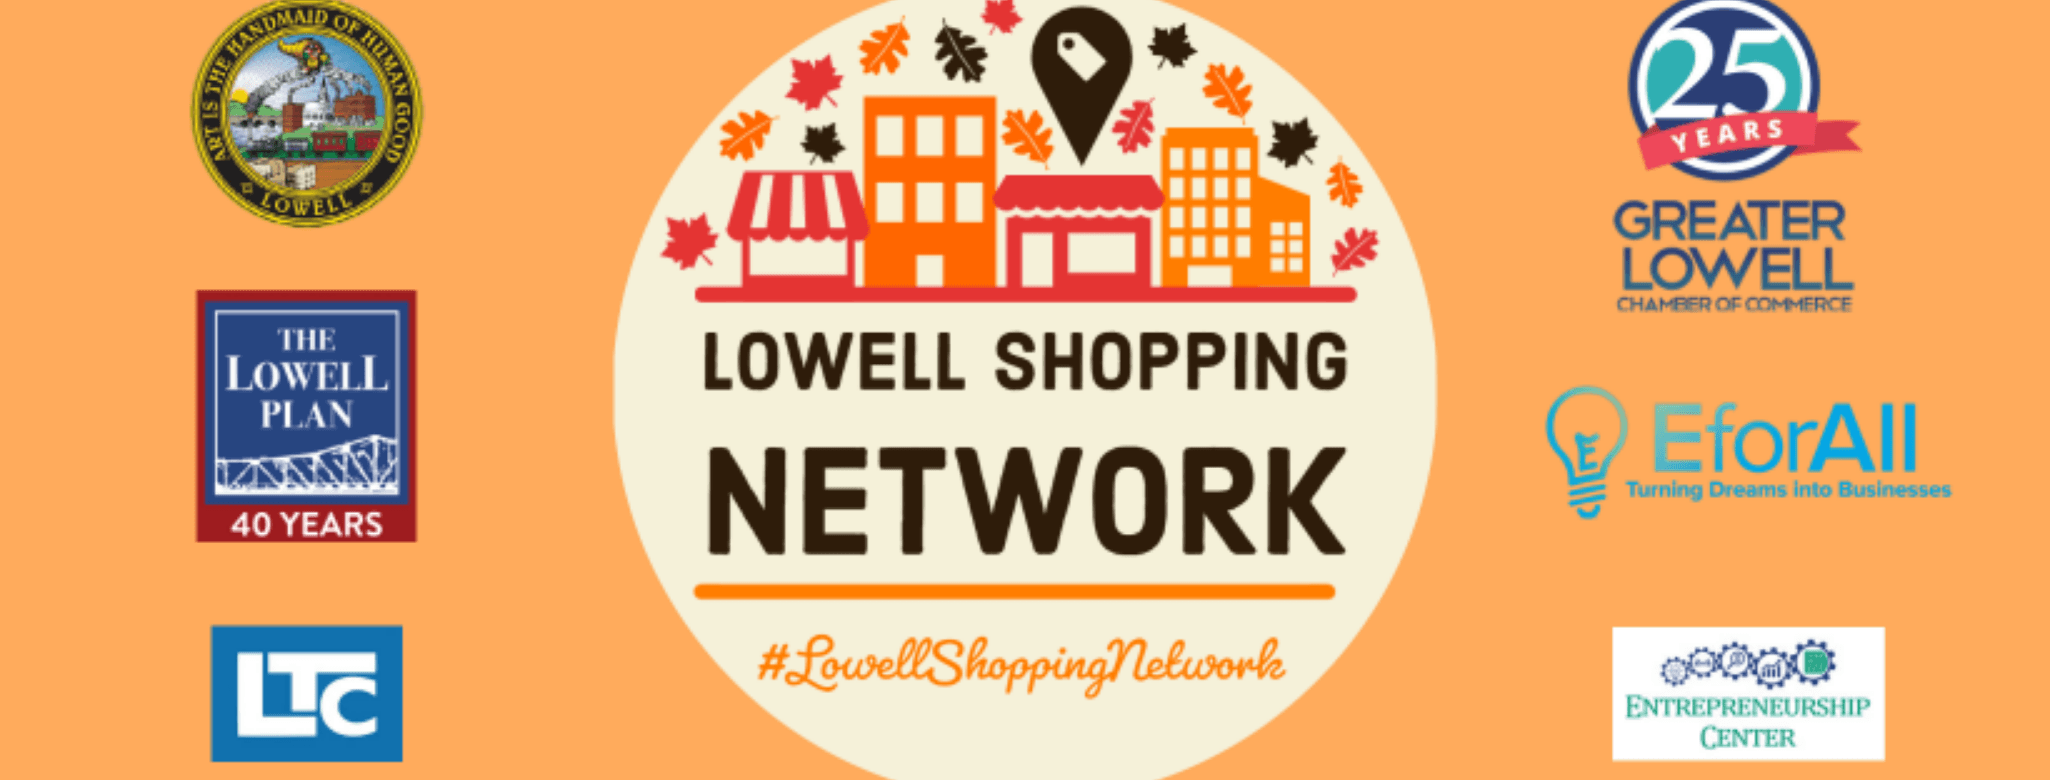 Lowell Shopping Network